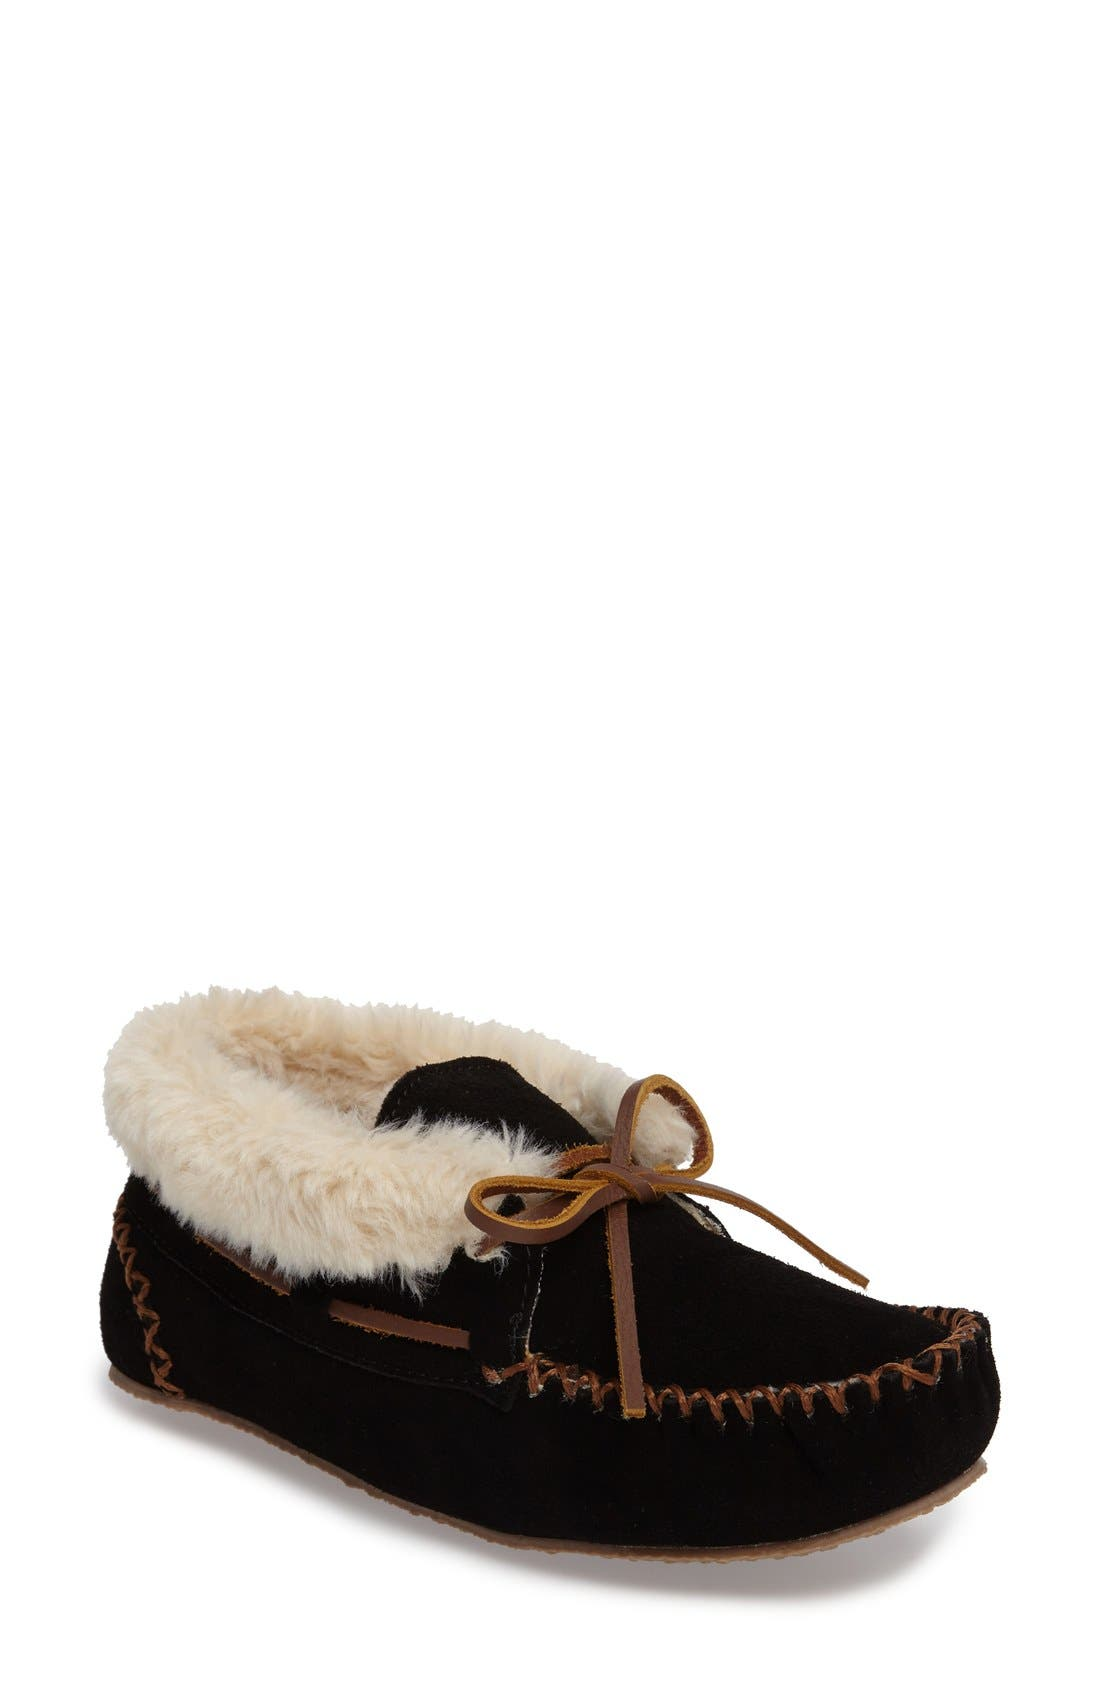 'Chrissy' Slipper Bootie,                         Main,                         color, Black